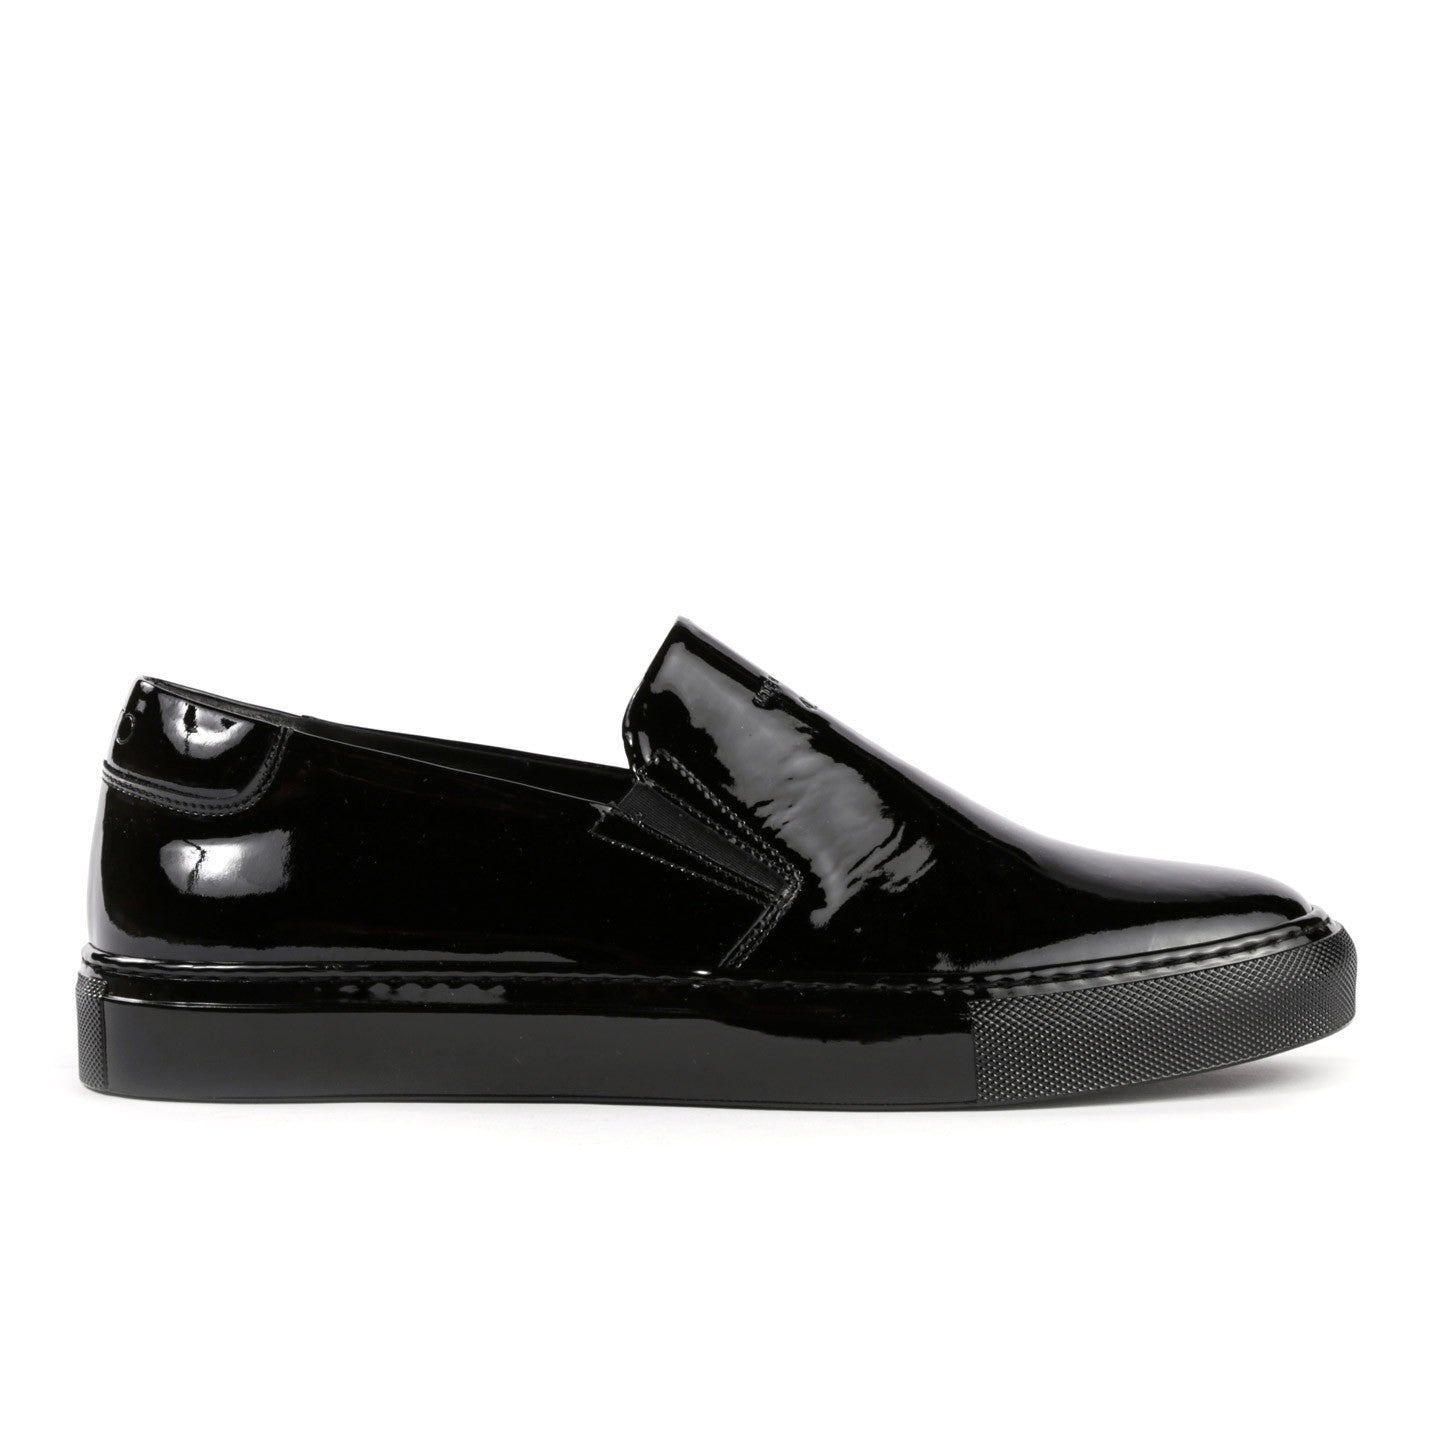 ONTO BARBEE SLIP-ON BLACK PATENT